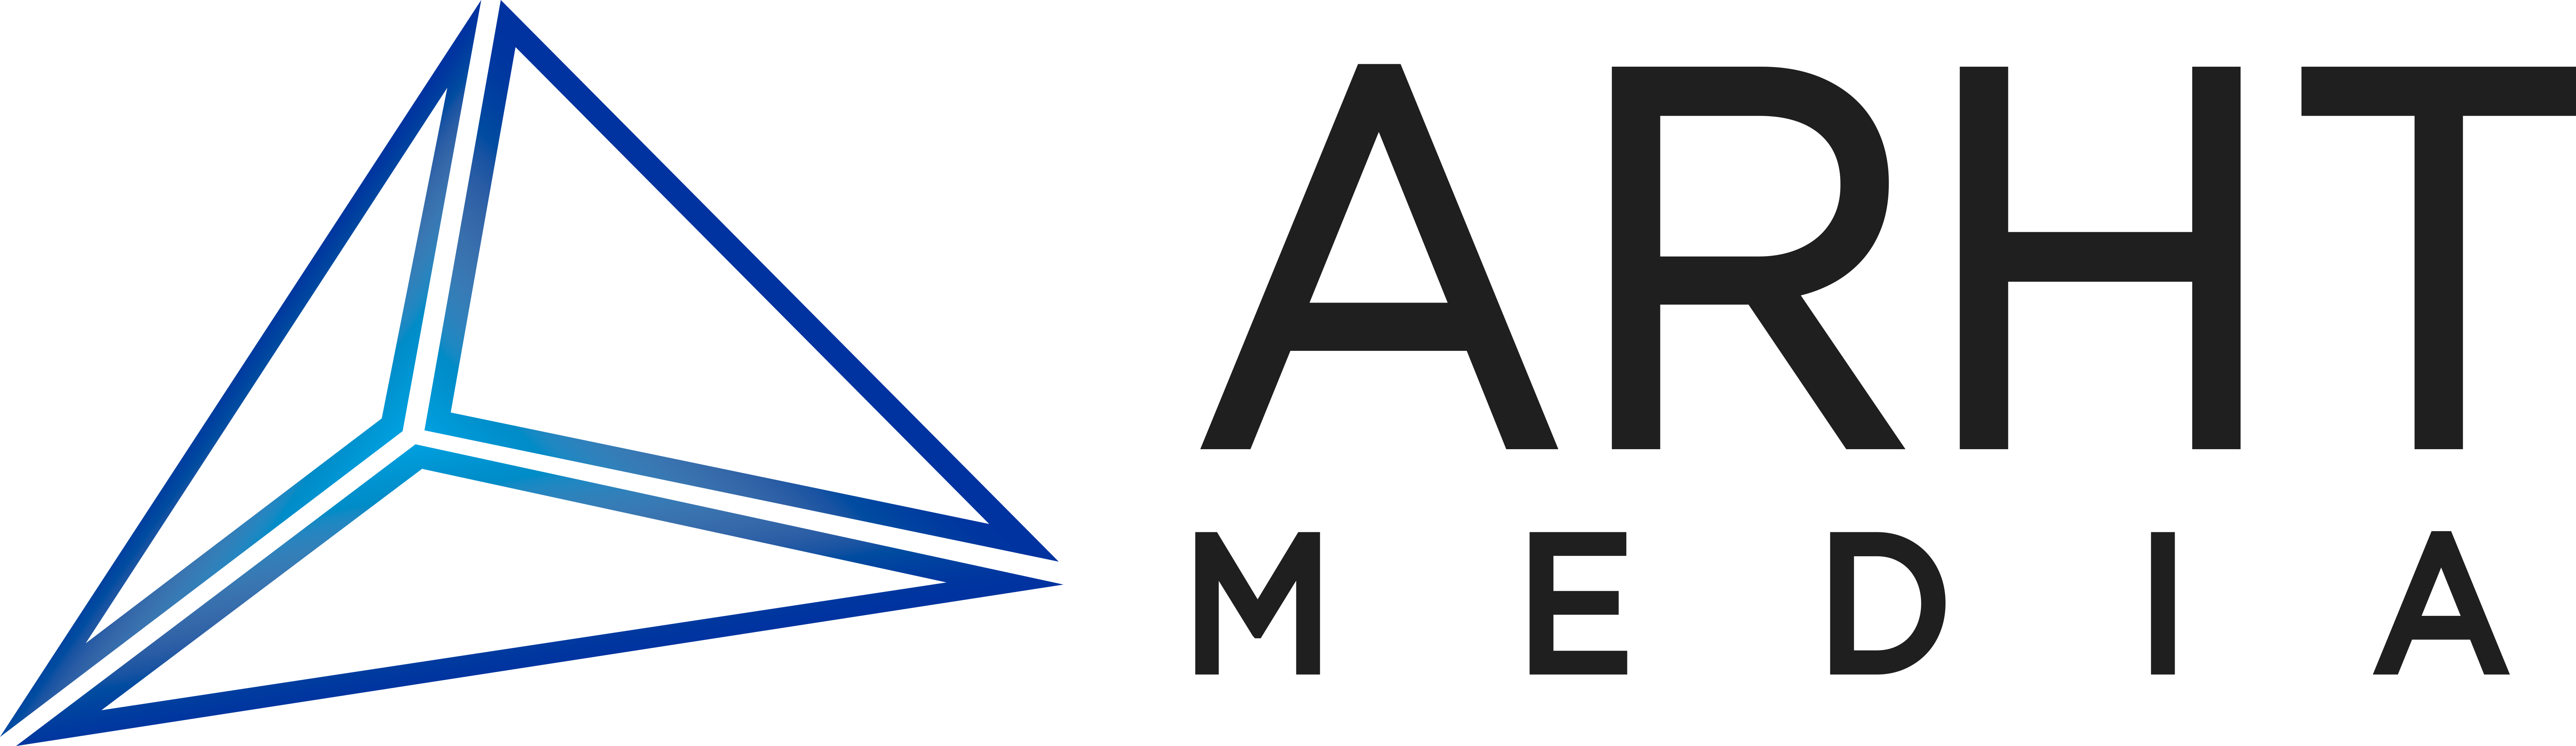 ARHT Media Signs 4 City Network Deal in the Asia-Pacific Region Capture and Display Locations Will Generate Upfront and Recurring Revenues